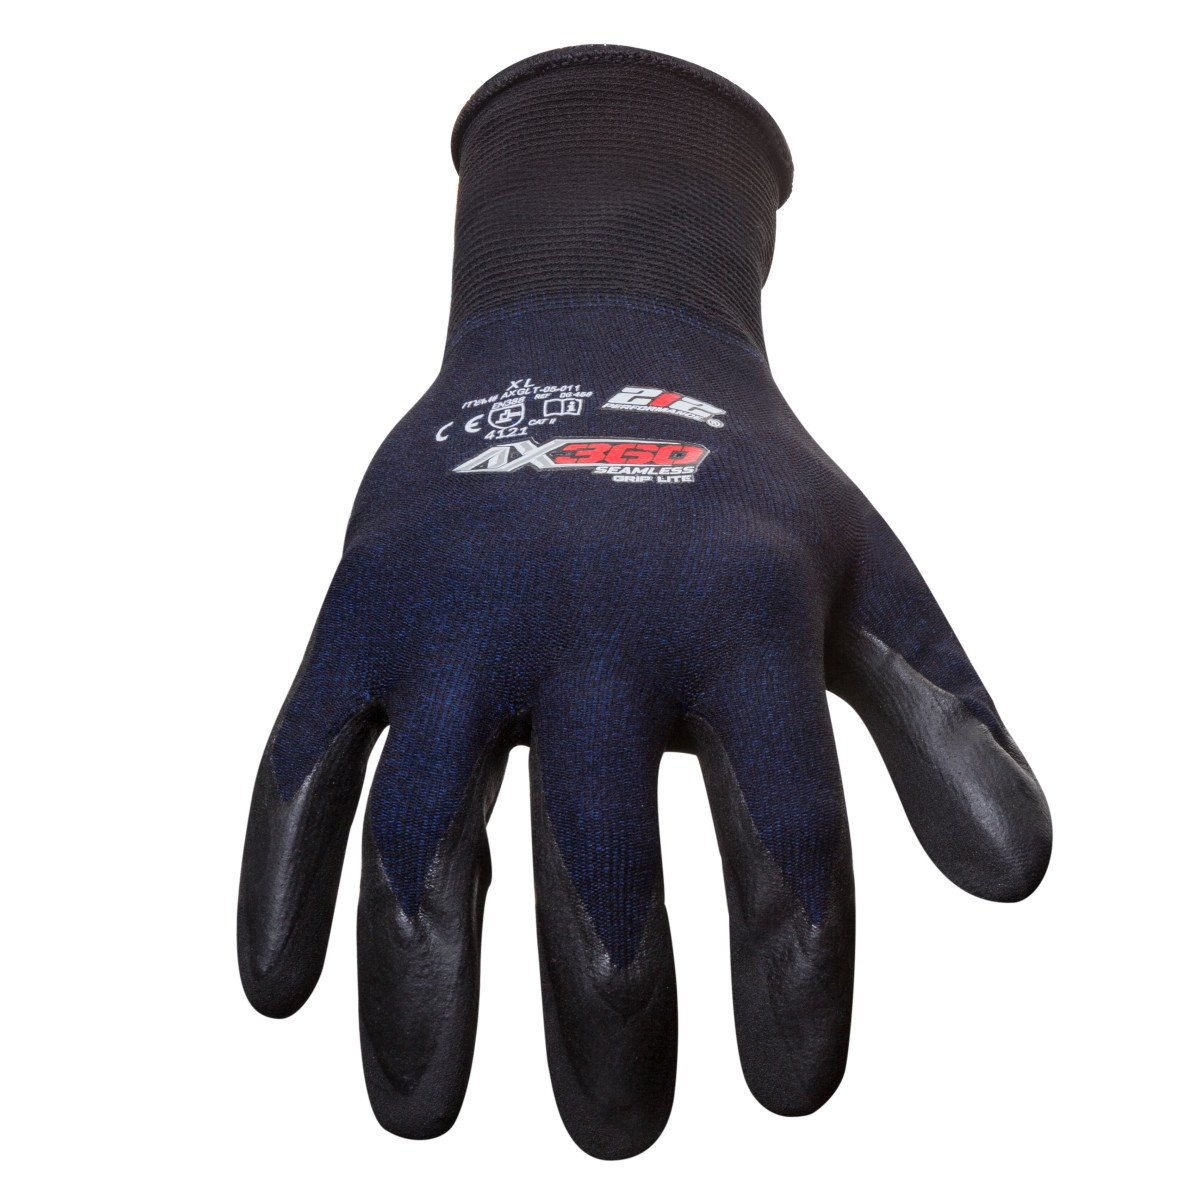 212 Performance Gloves AXGLT-05-010 AX360 Grip Lite Nitrile-dipped Work Glove, 12-Pair Bulk Pack, Large by 219 Performance Gloves (Image #2)